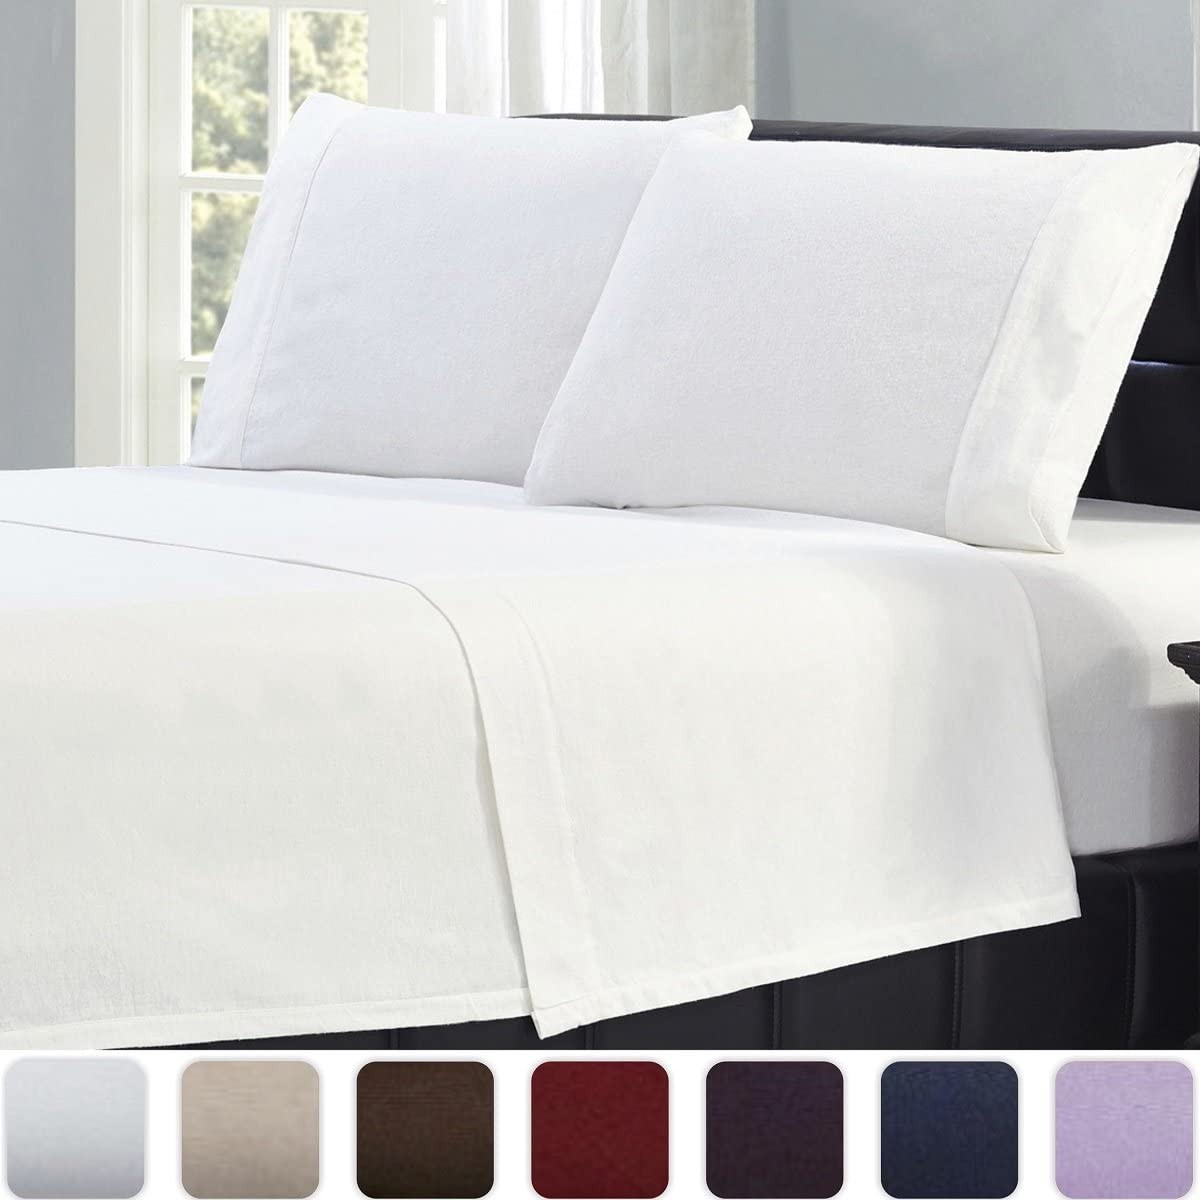 Mellanni California King Flannel Sheet Set - 4 pc Luxury 100% Cotton - Lightweight Bed Sheets - Cozy, Soft, Warm, Breathable Bedding - Deep Pockets - All Around Elastic (Cal King, White)